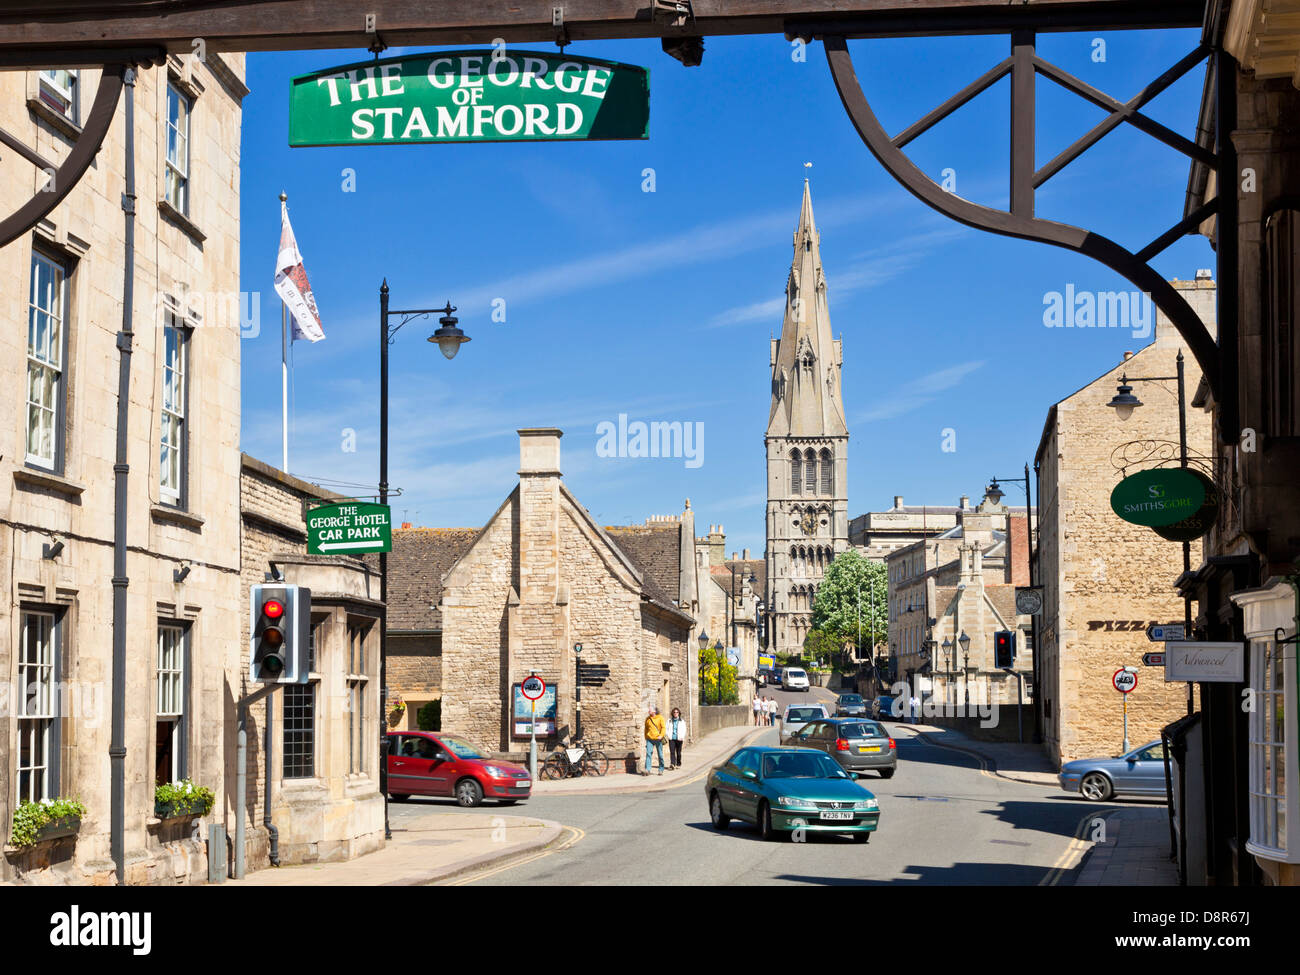 The view to St Mary's church looking from the George Hotel a famous old coaching inn in Stamford Lincolnshire - Stock Image